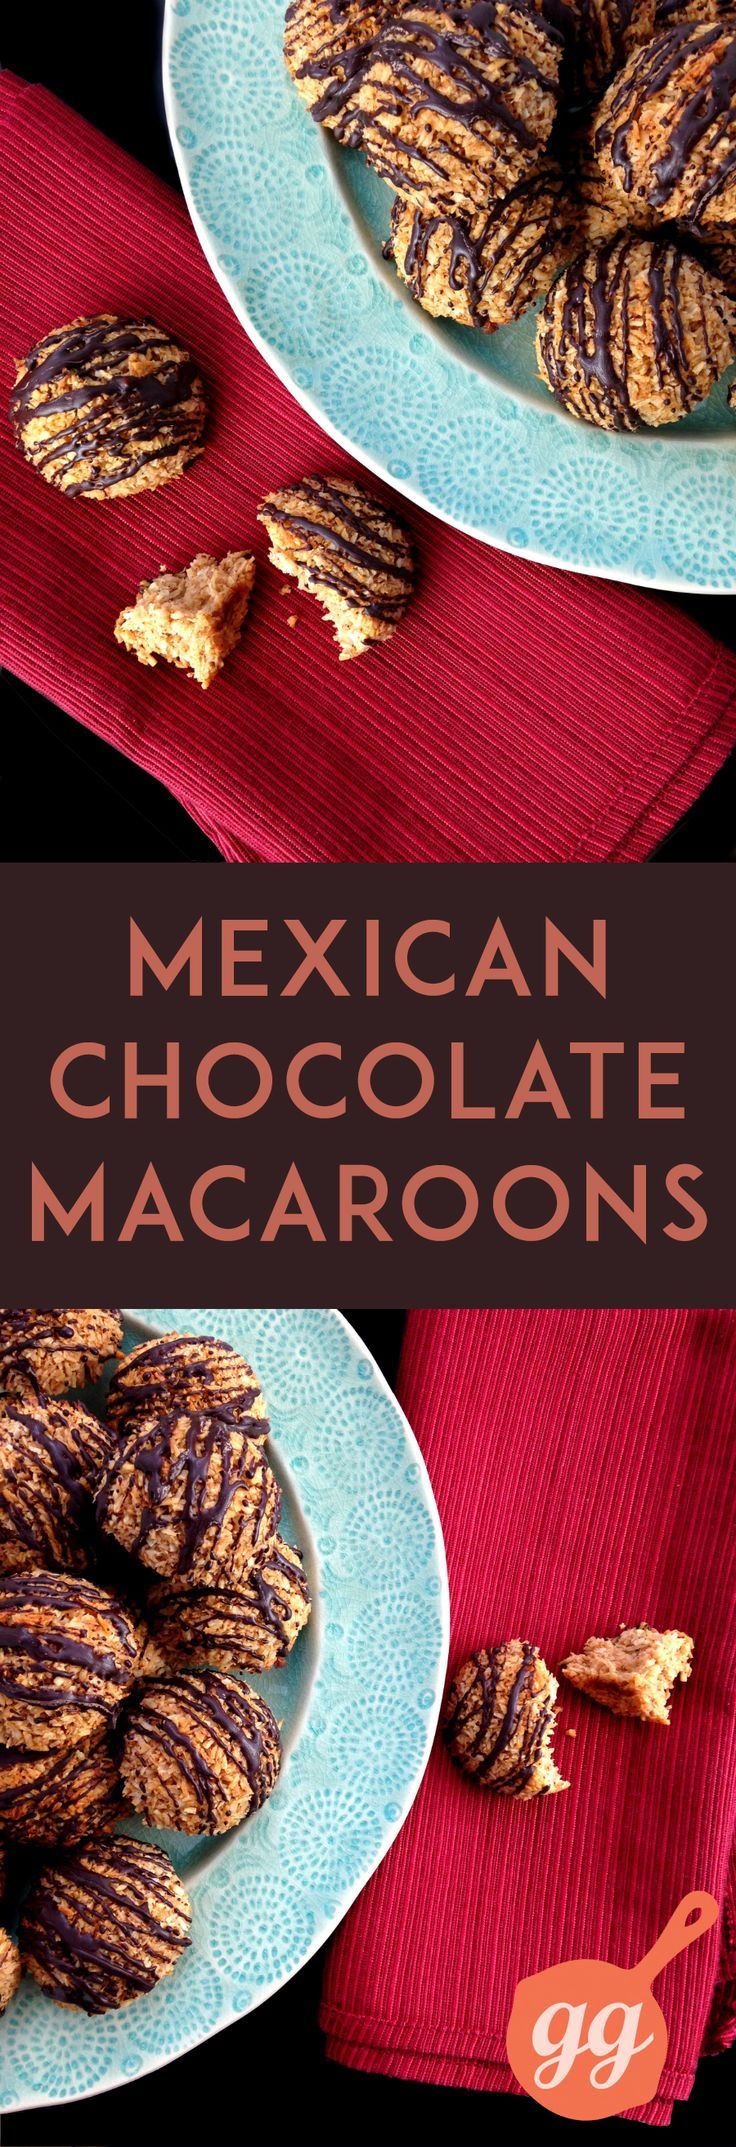 mexicanchocolatemacaroonspin